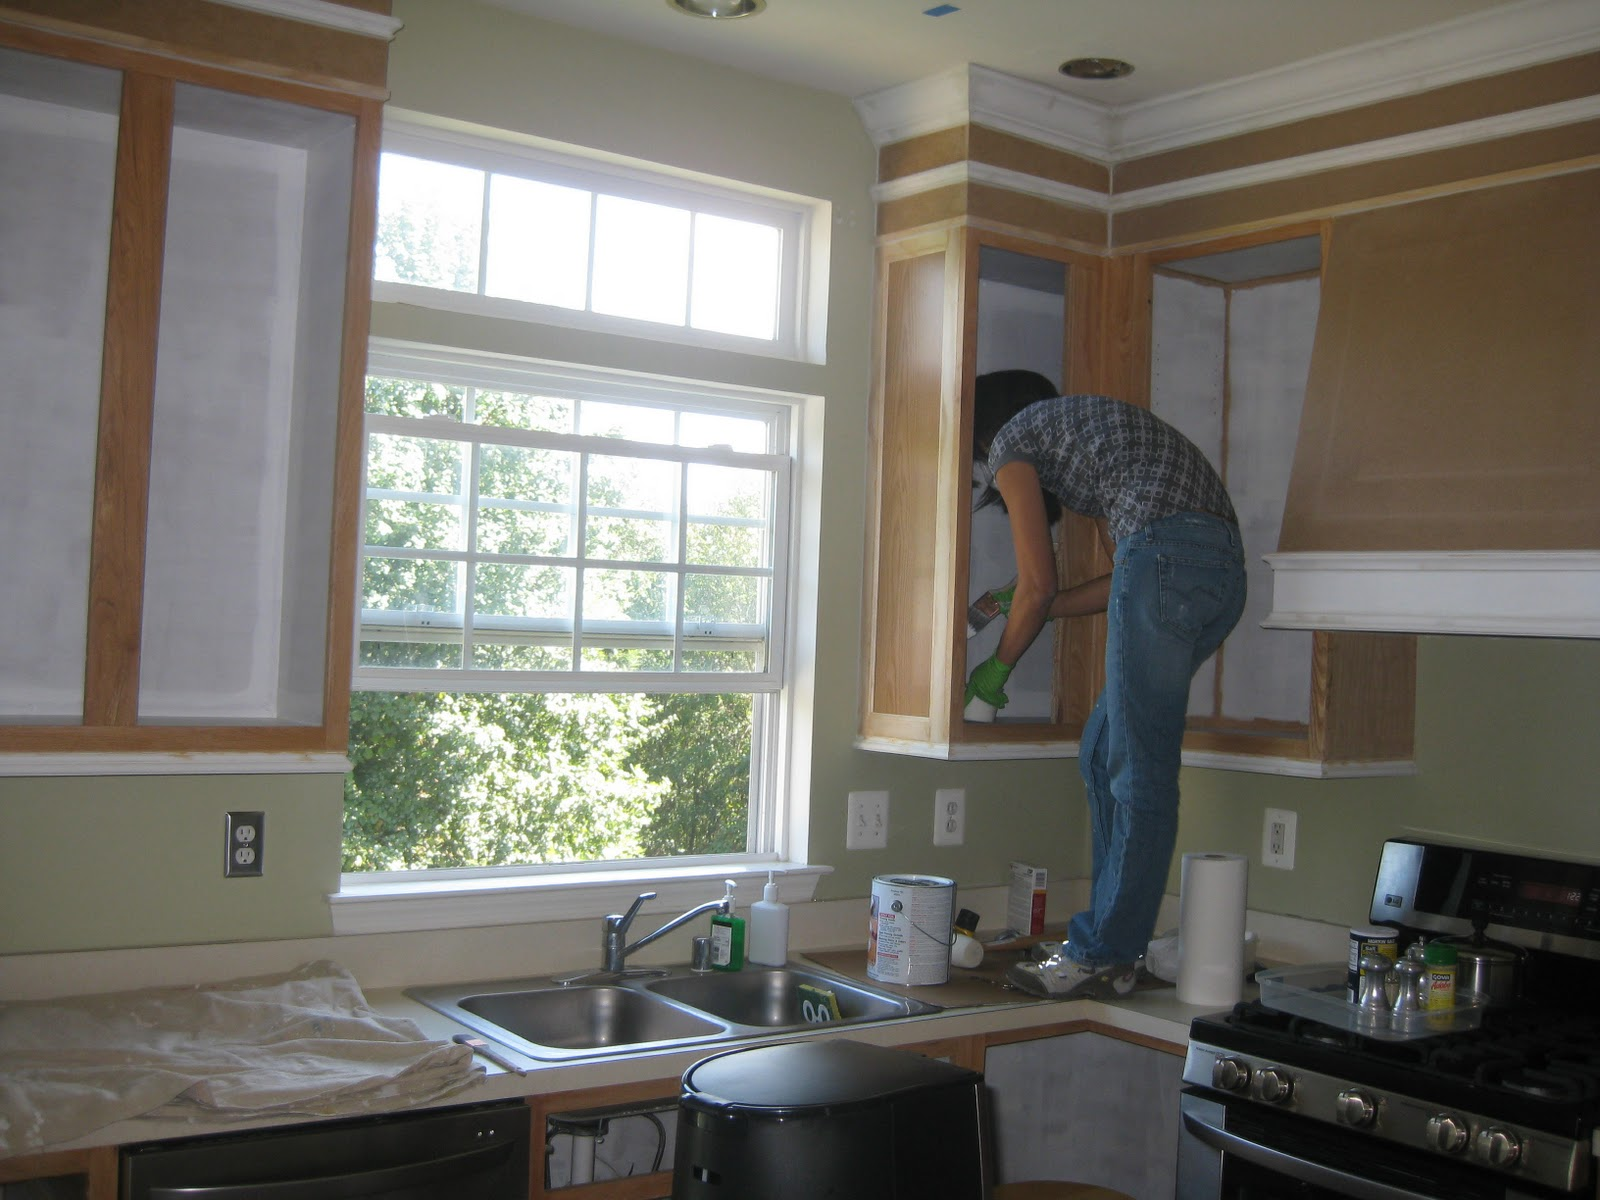 How To Paint Kitchen Cabinets In Mobile Home Painting The Kitchen Cabinets Remodelando La Casa